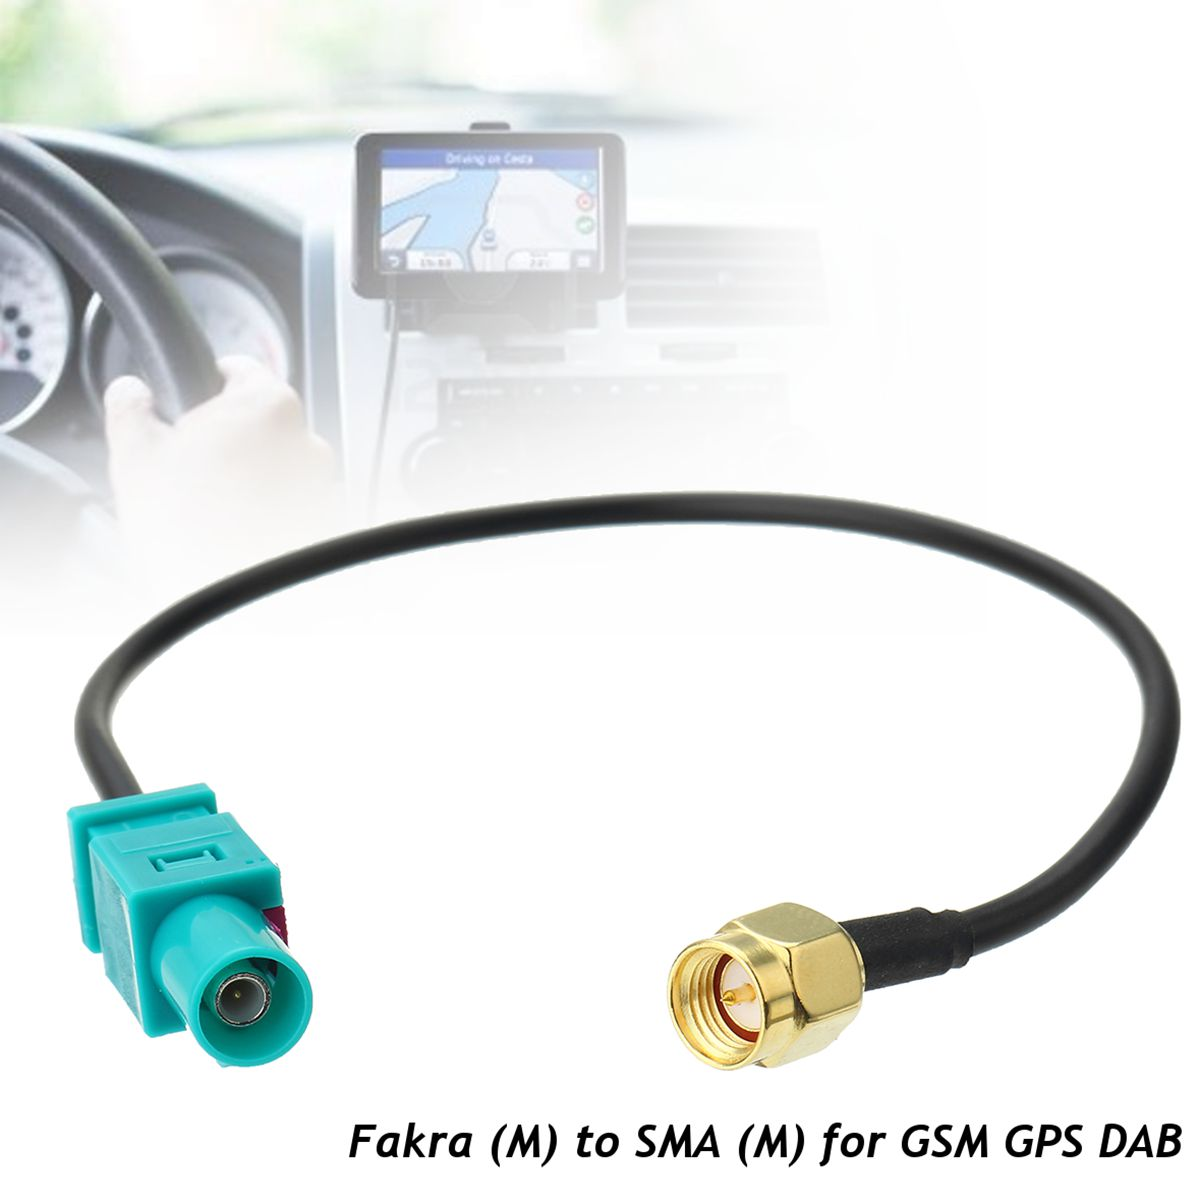 1PC Antenna Adapter Plug Fakra Z (M) to SMA (M) Connector Cable For Car GSM GPS DAB 21.5cm(China)